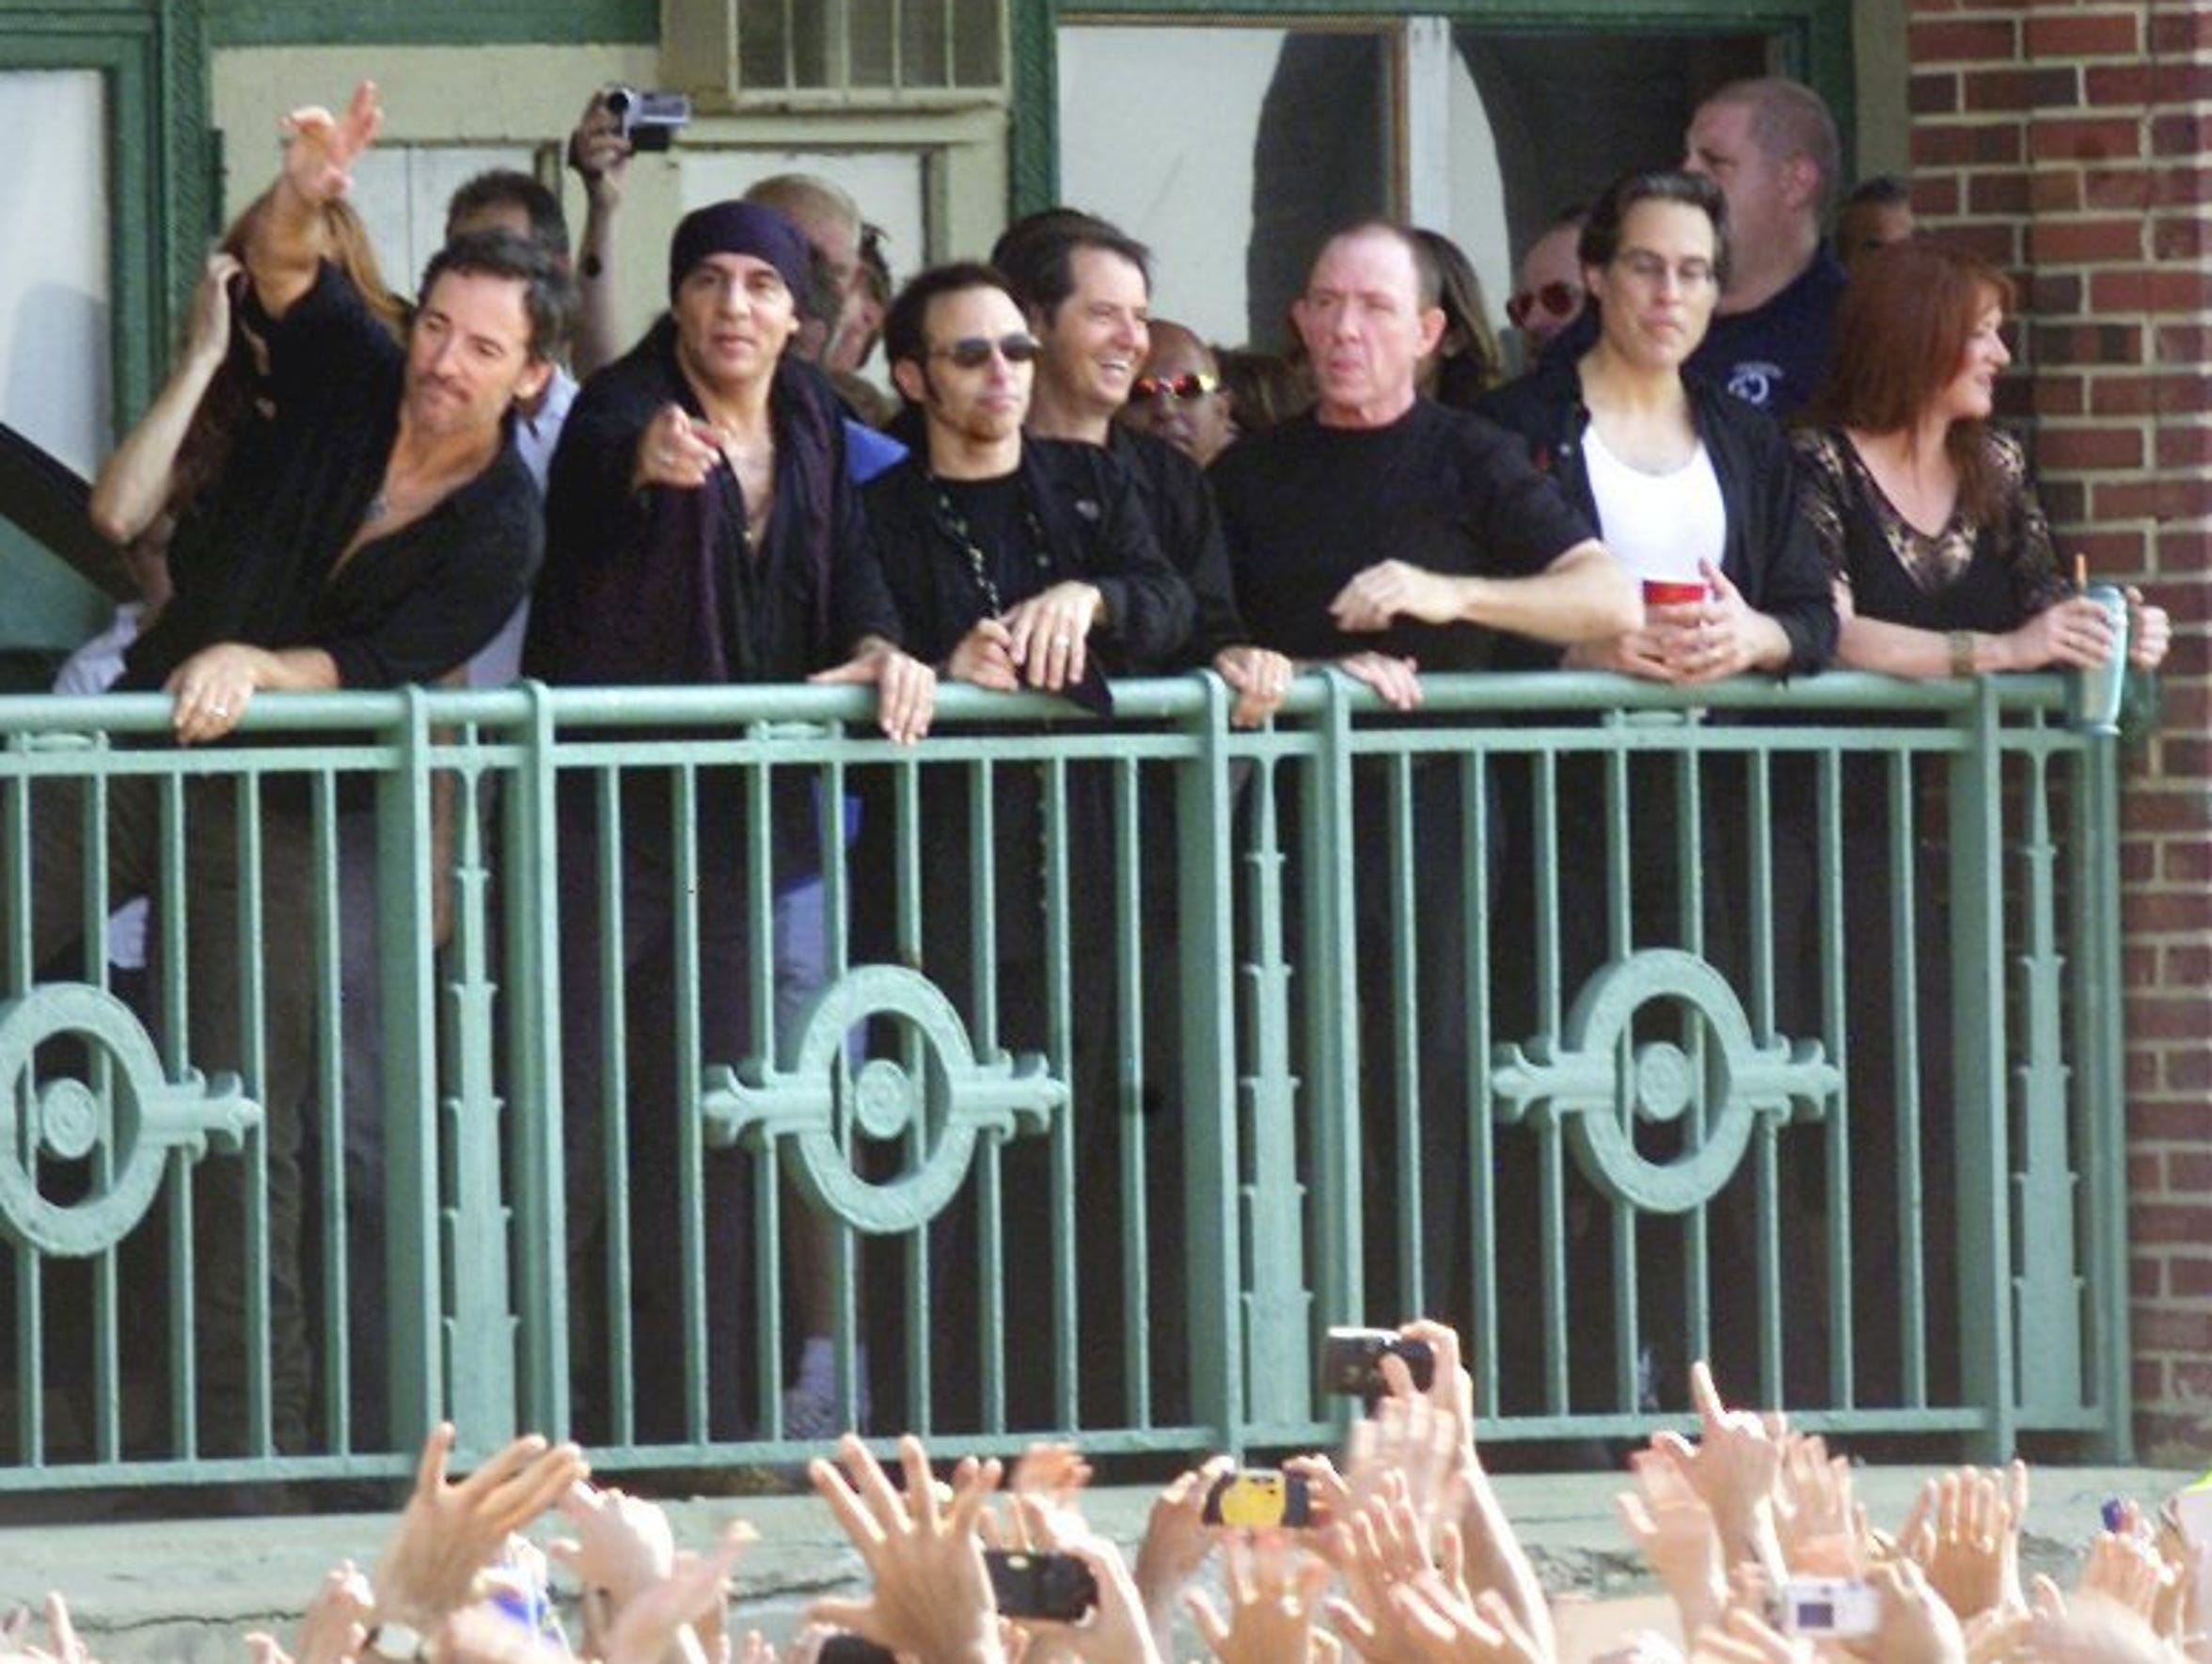 Bruce Springsteen and the E Street Band wave to the